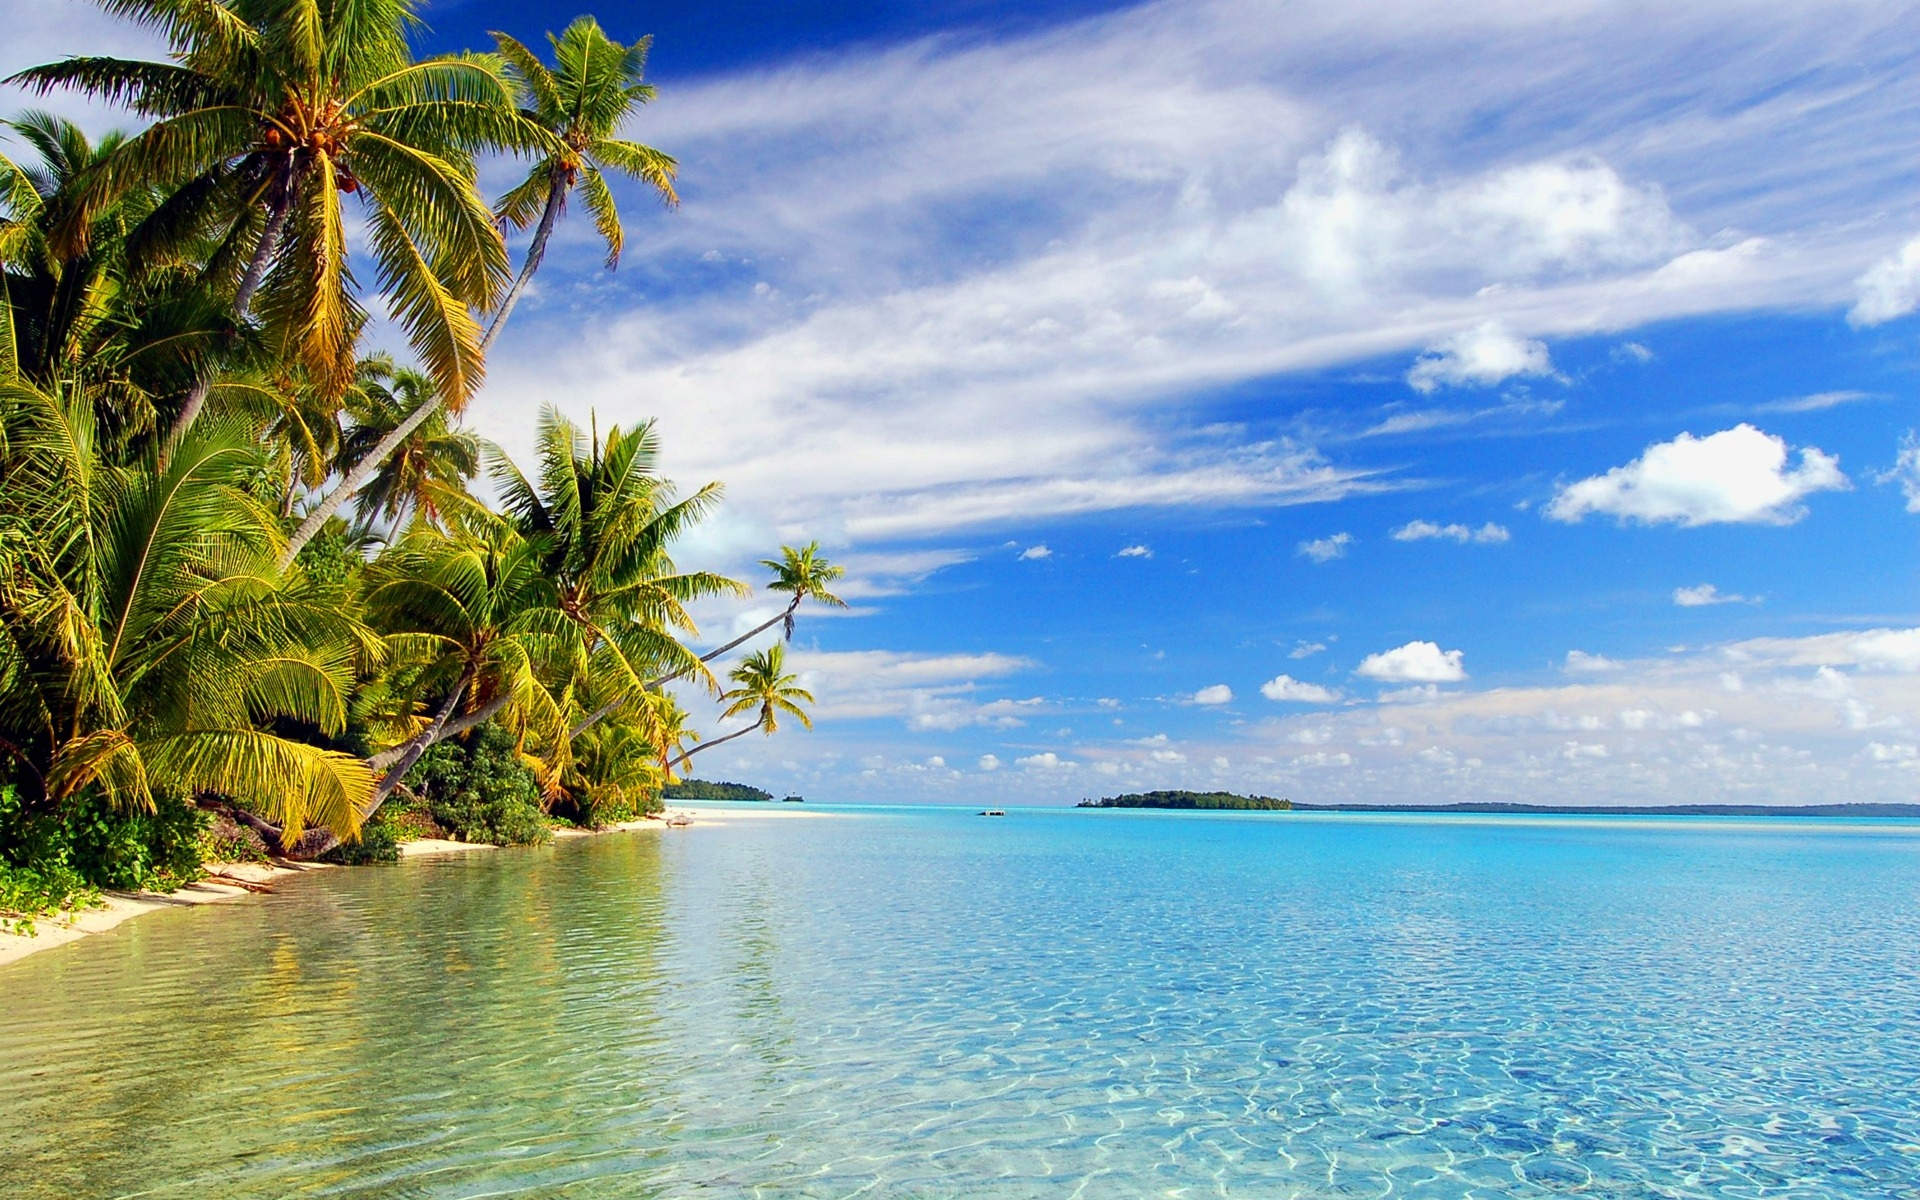 Free Download Hd Tropical Island Beach Paradise Wallpapers